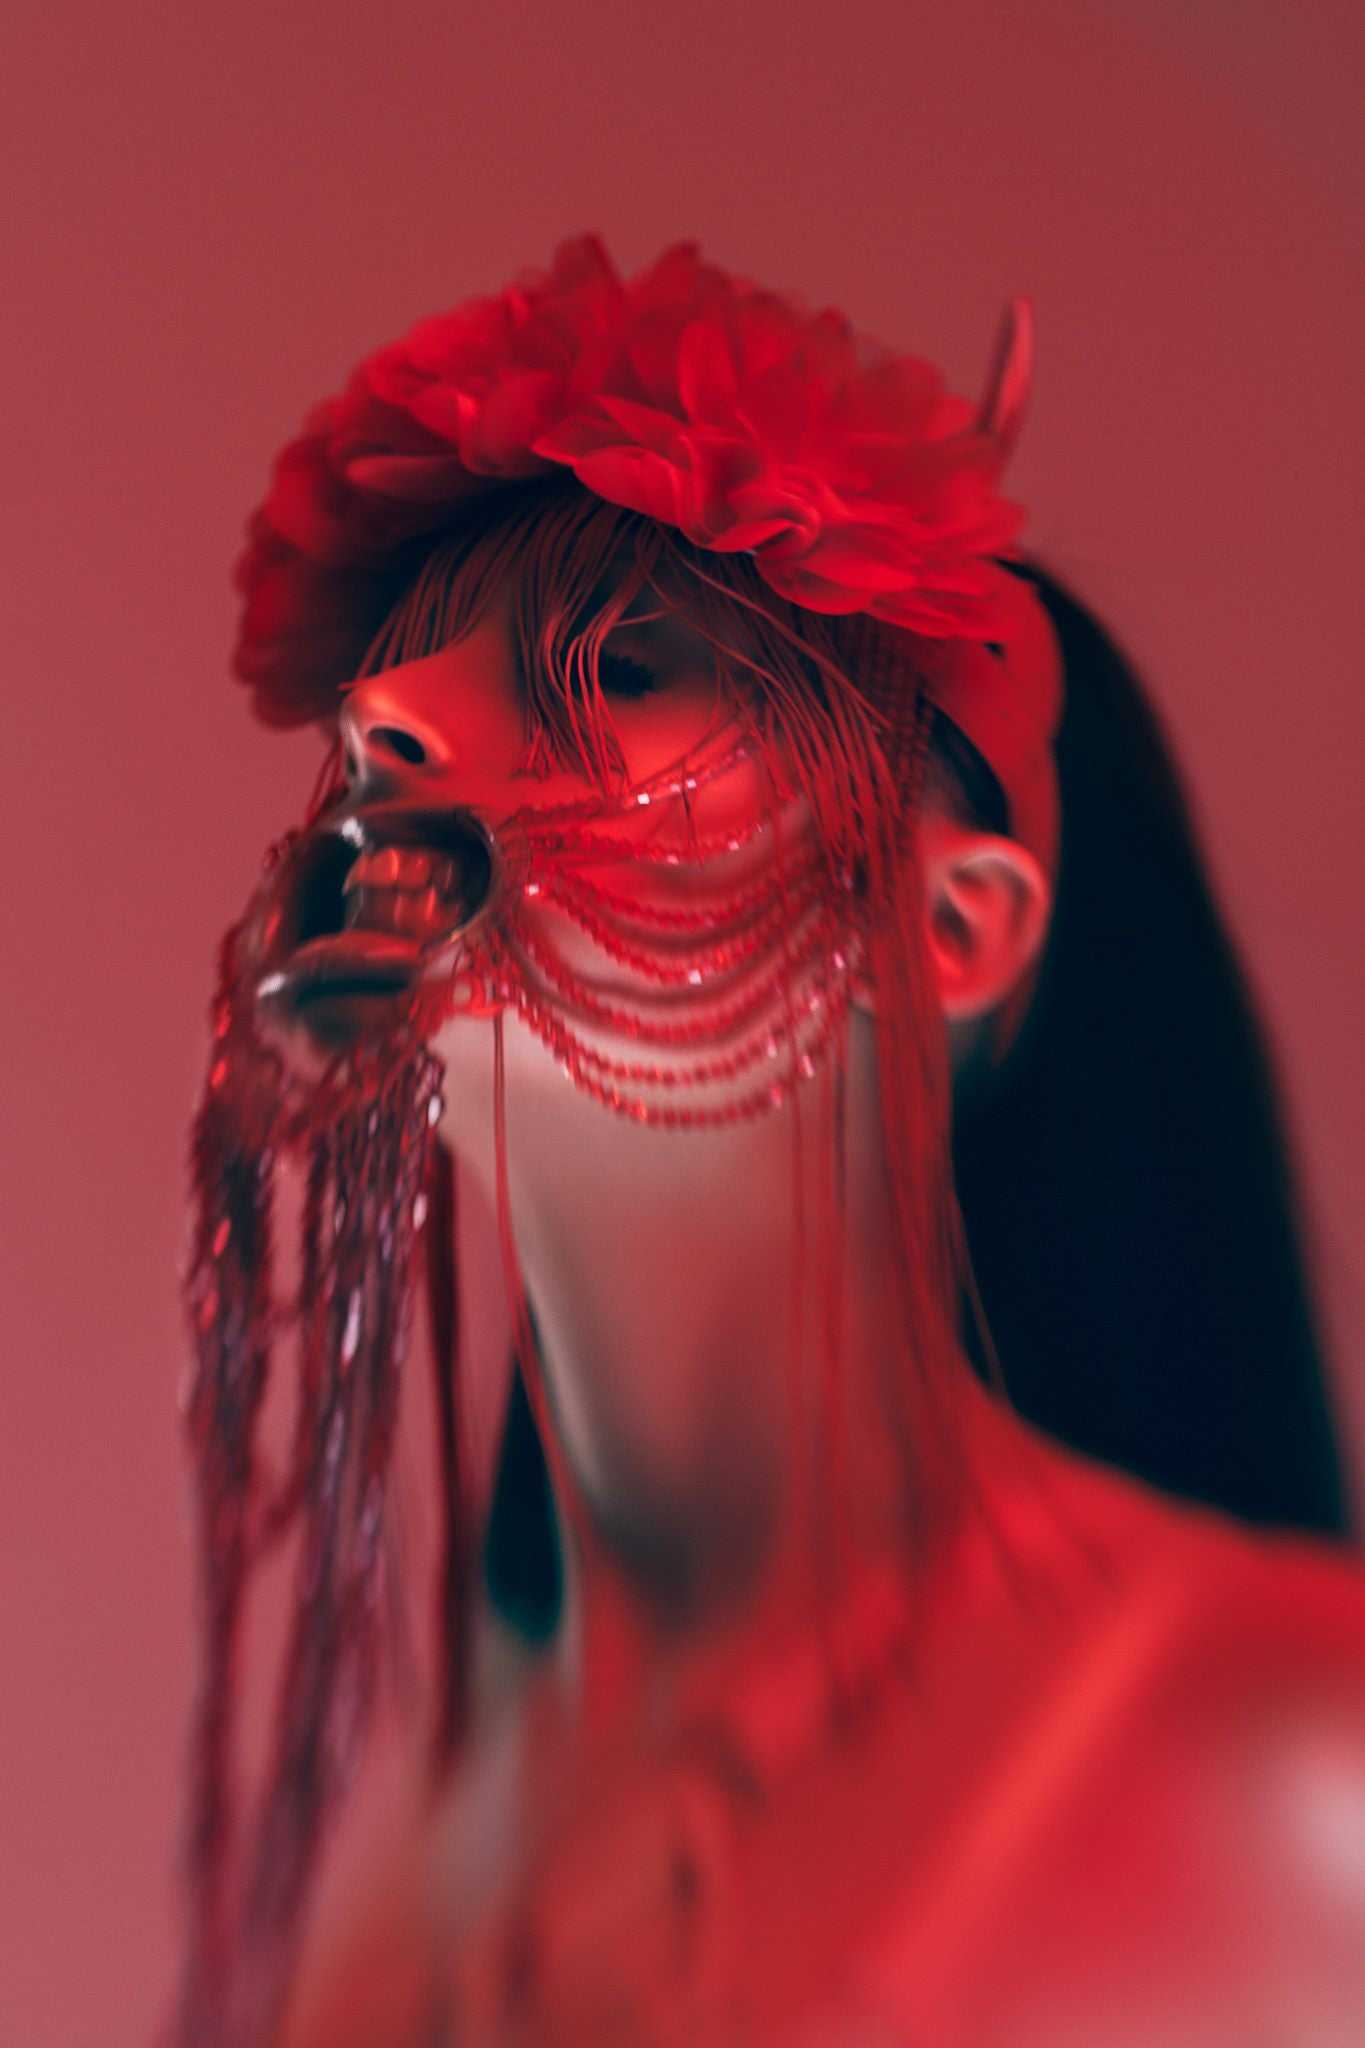 woman with red jewel mask and red lights teeth black hair fashion red light Lensbaby featured photos